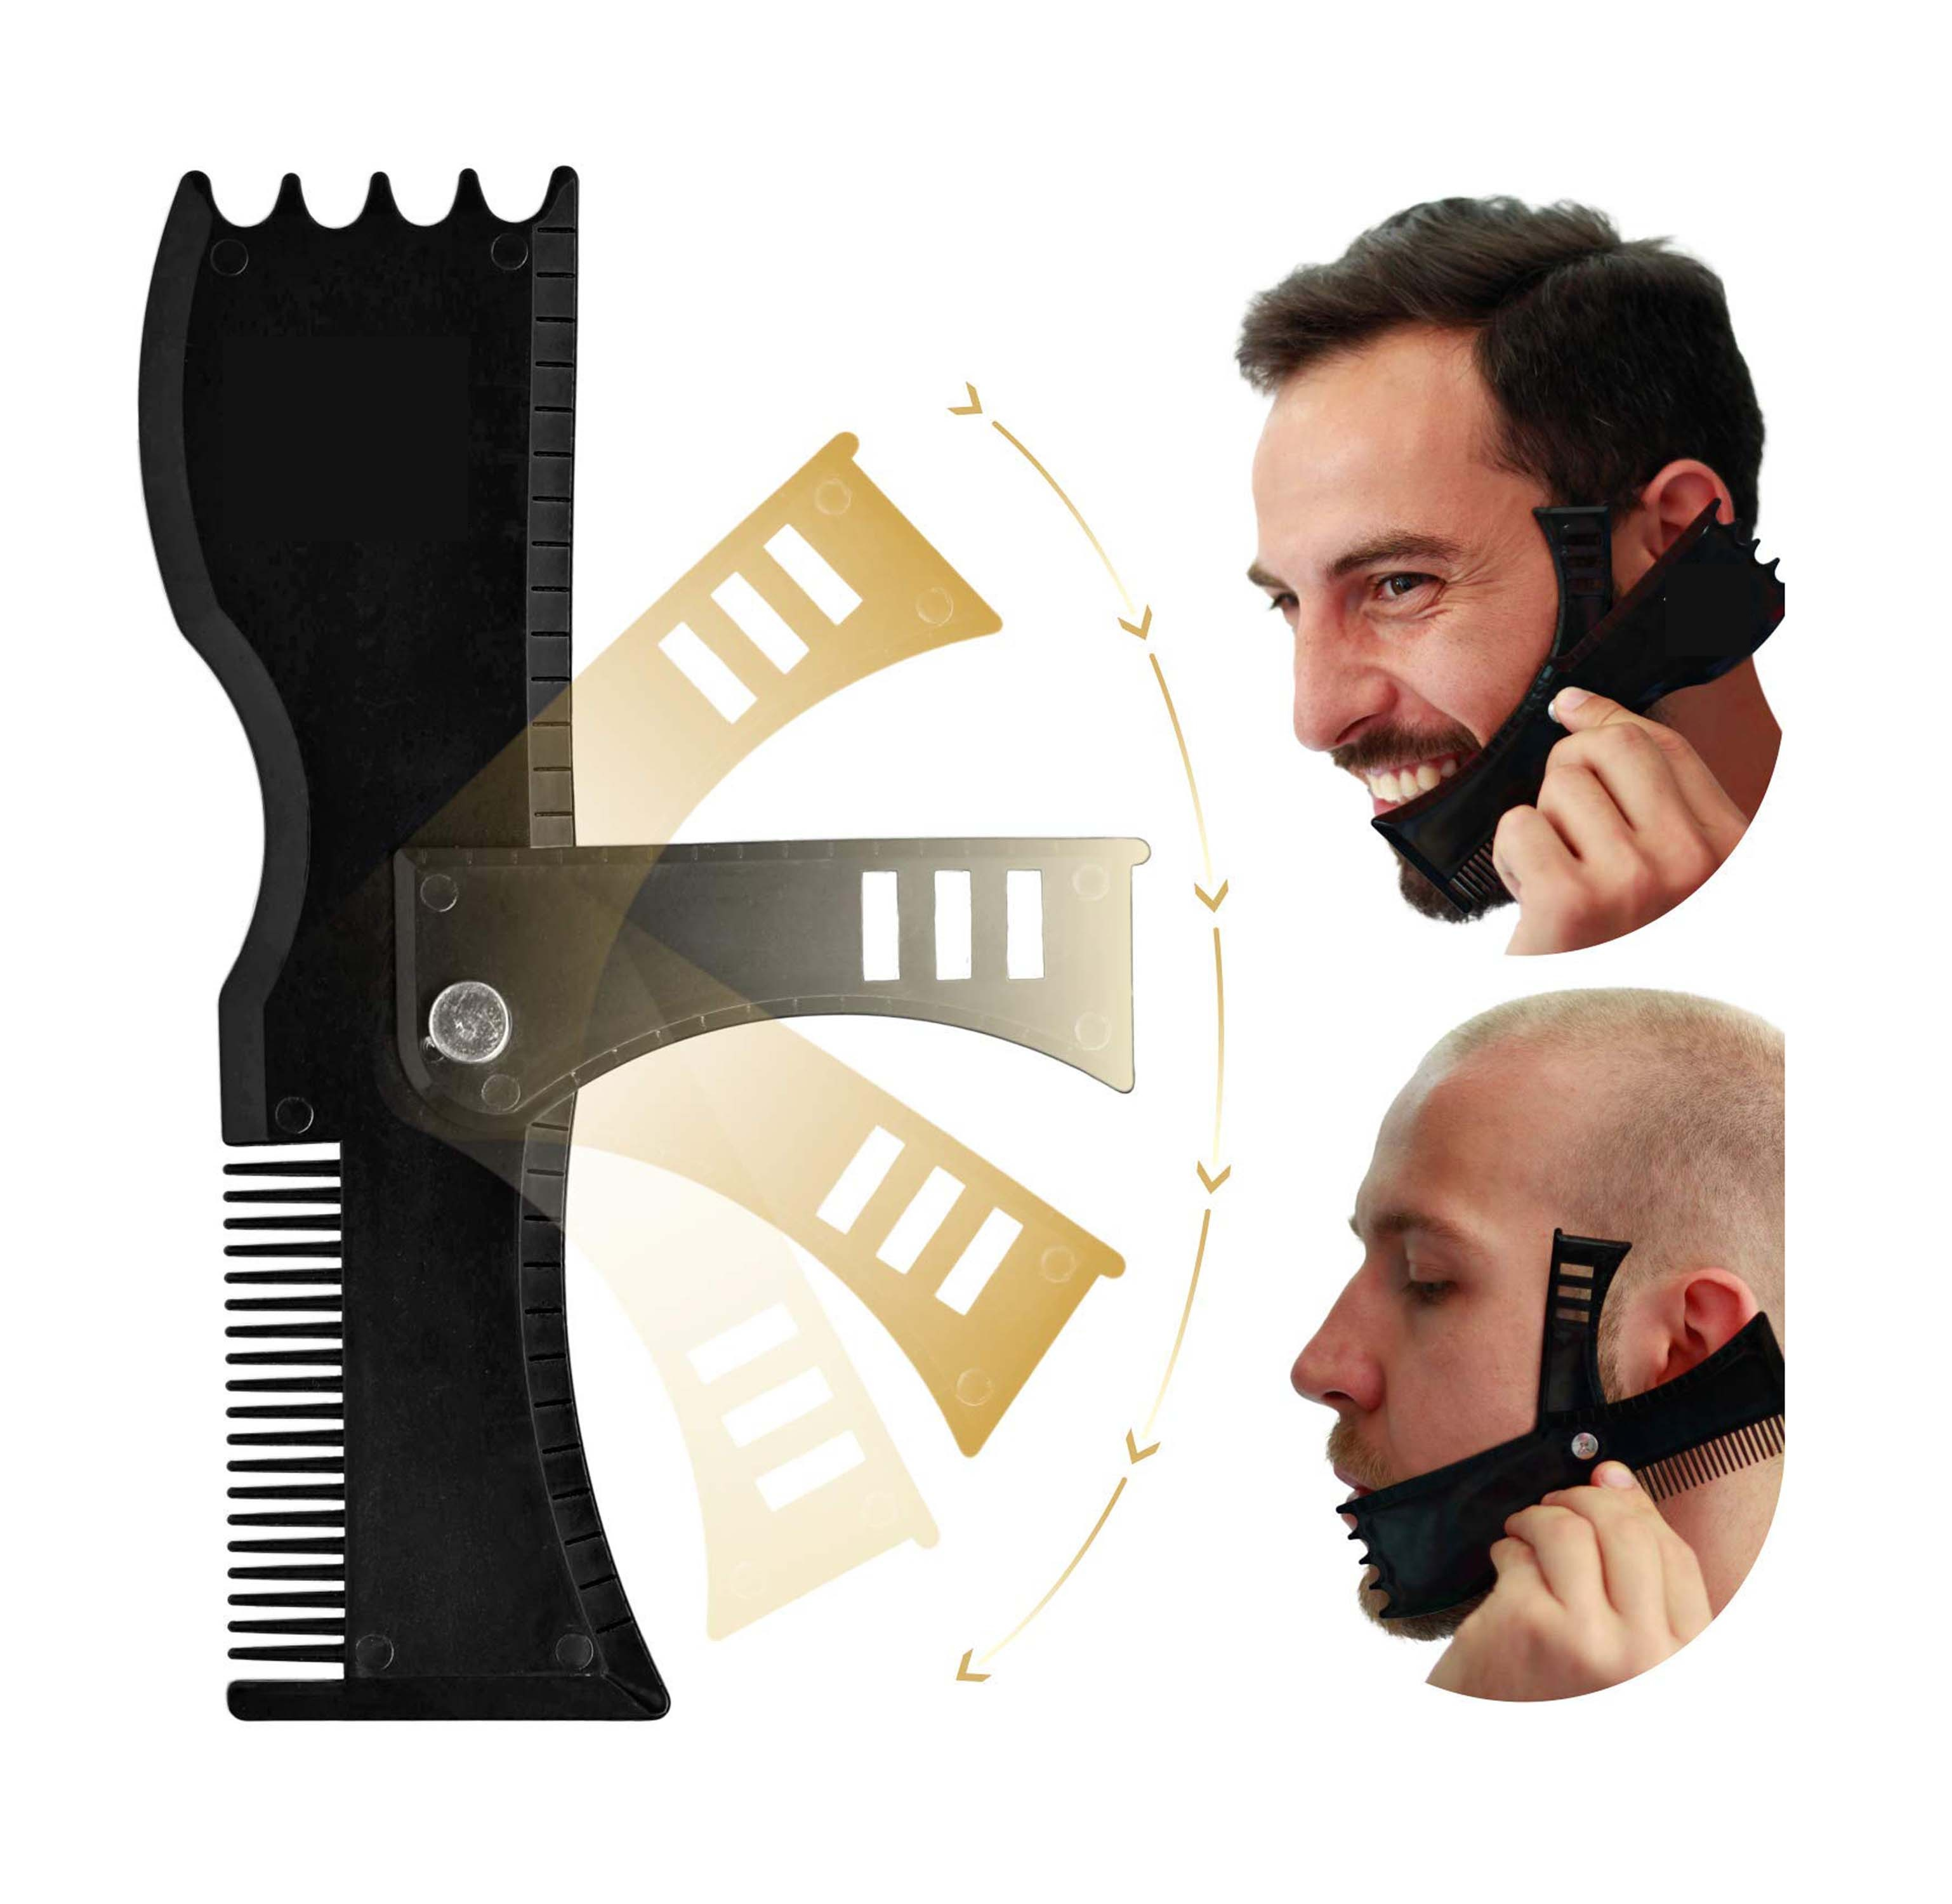 Portable Beard Comb New Rotating Beard Style Comb Adjusted To Different Angles Of Beard Style Comb Beard Style Ruler G0208